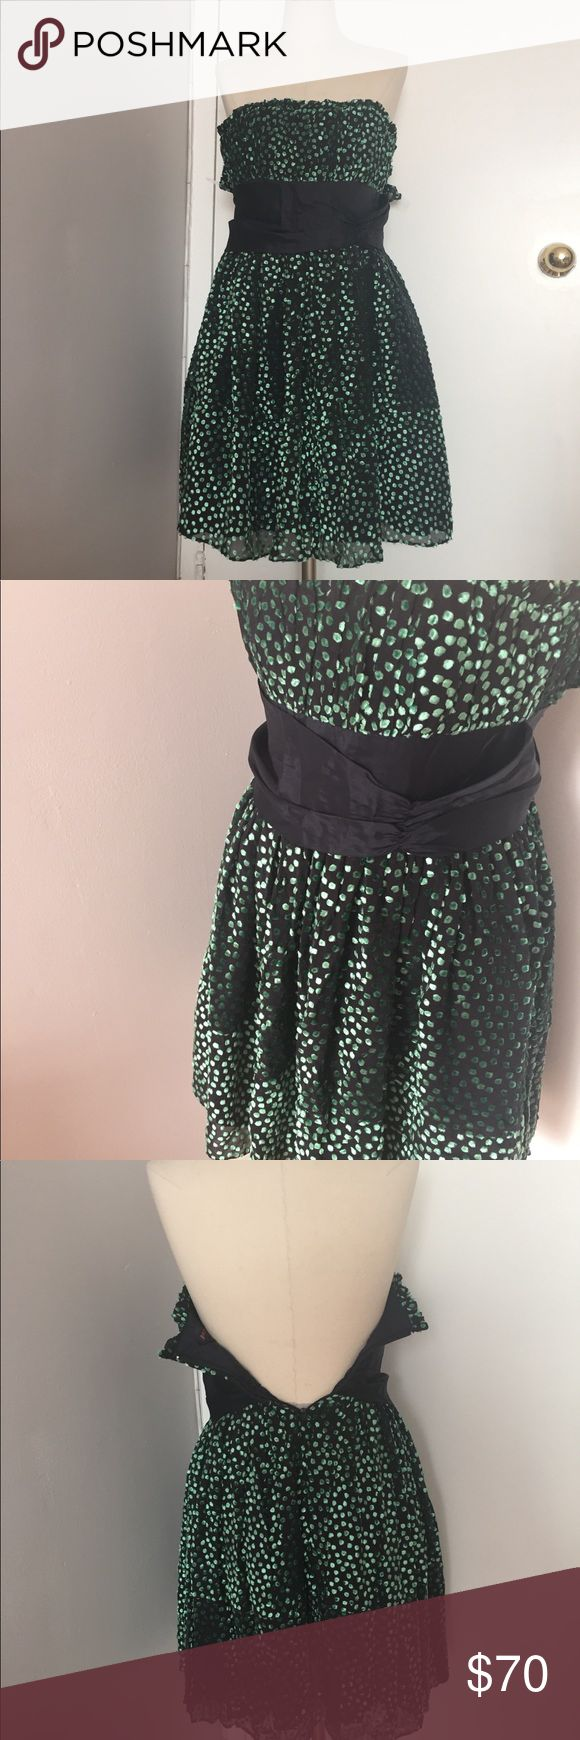 Betsy Johnson Green Velour Strapless Dress Size 2 For the Belle of the  Ball! Perfect